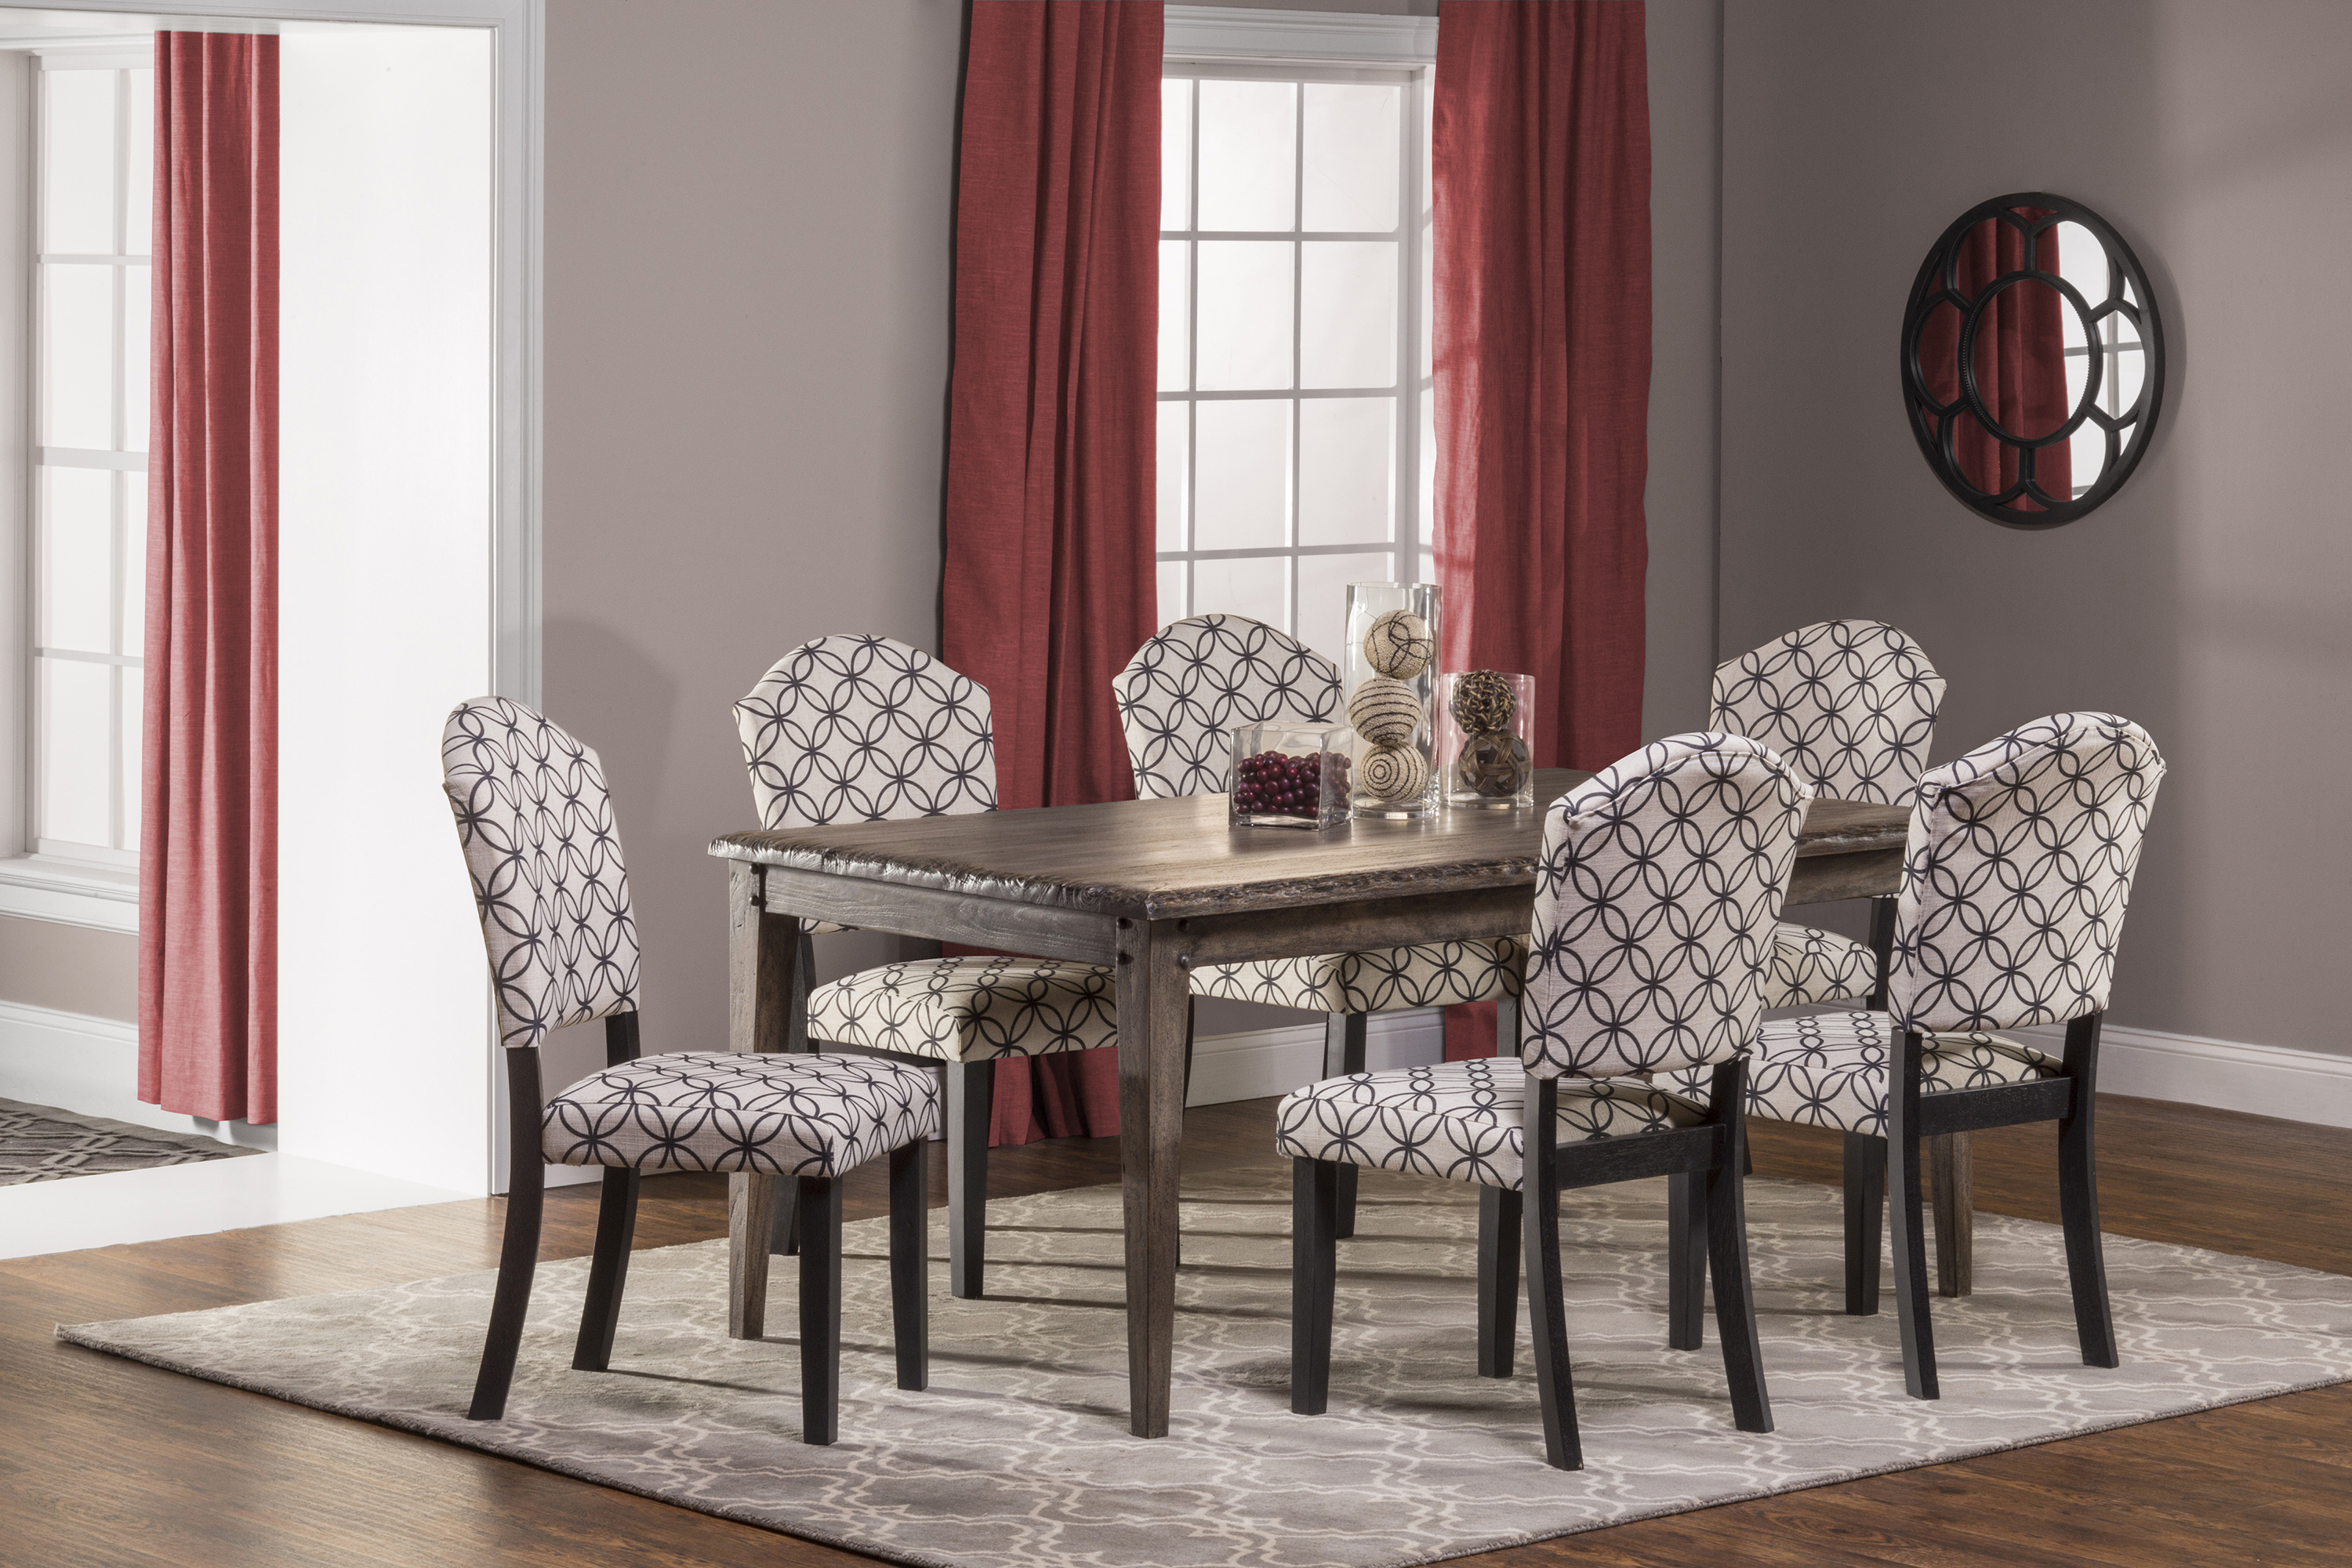 Hillsdale Lorient 7-Piece Rectangle Dining Set with Parsons Di - Item Number: 5676DTRSP7